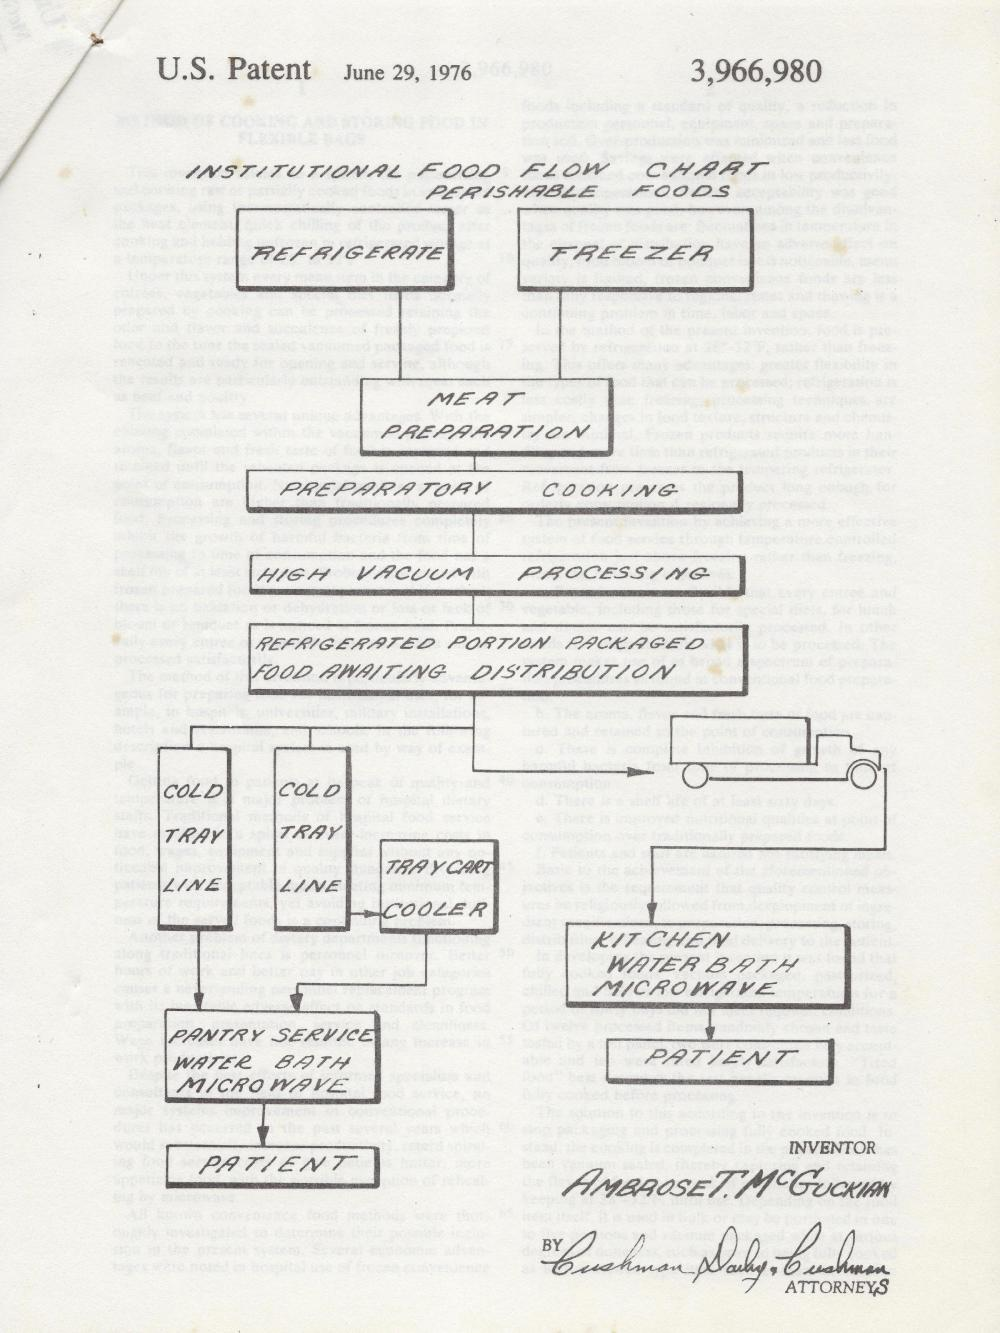 medium resolution of ambrose mcguckian created a flowchart to illustrate the sequence of hospital food service from storage to preparation to patient for his patent